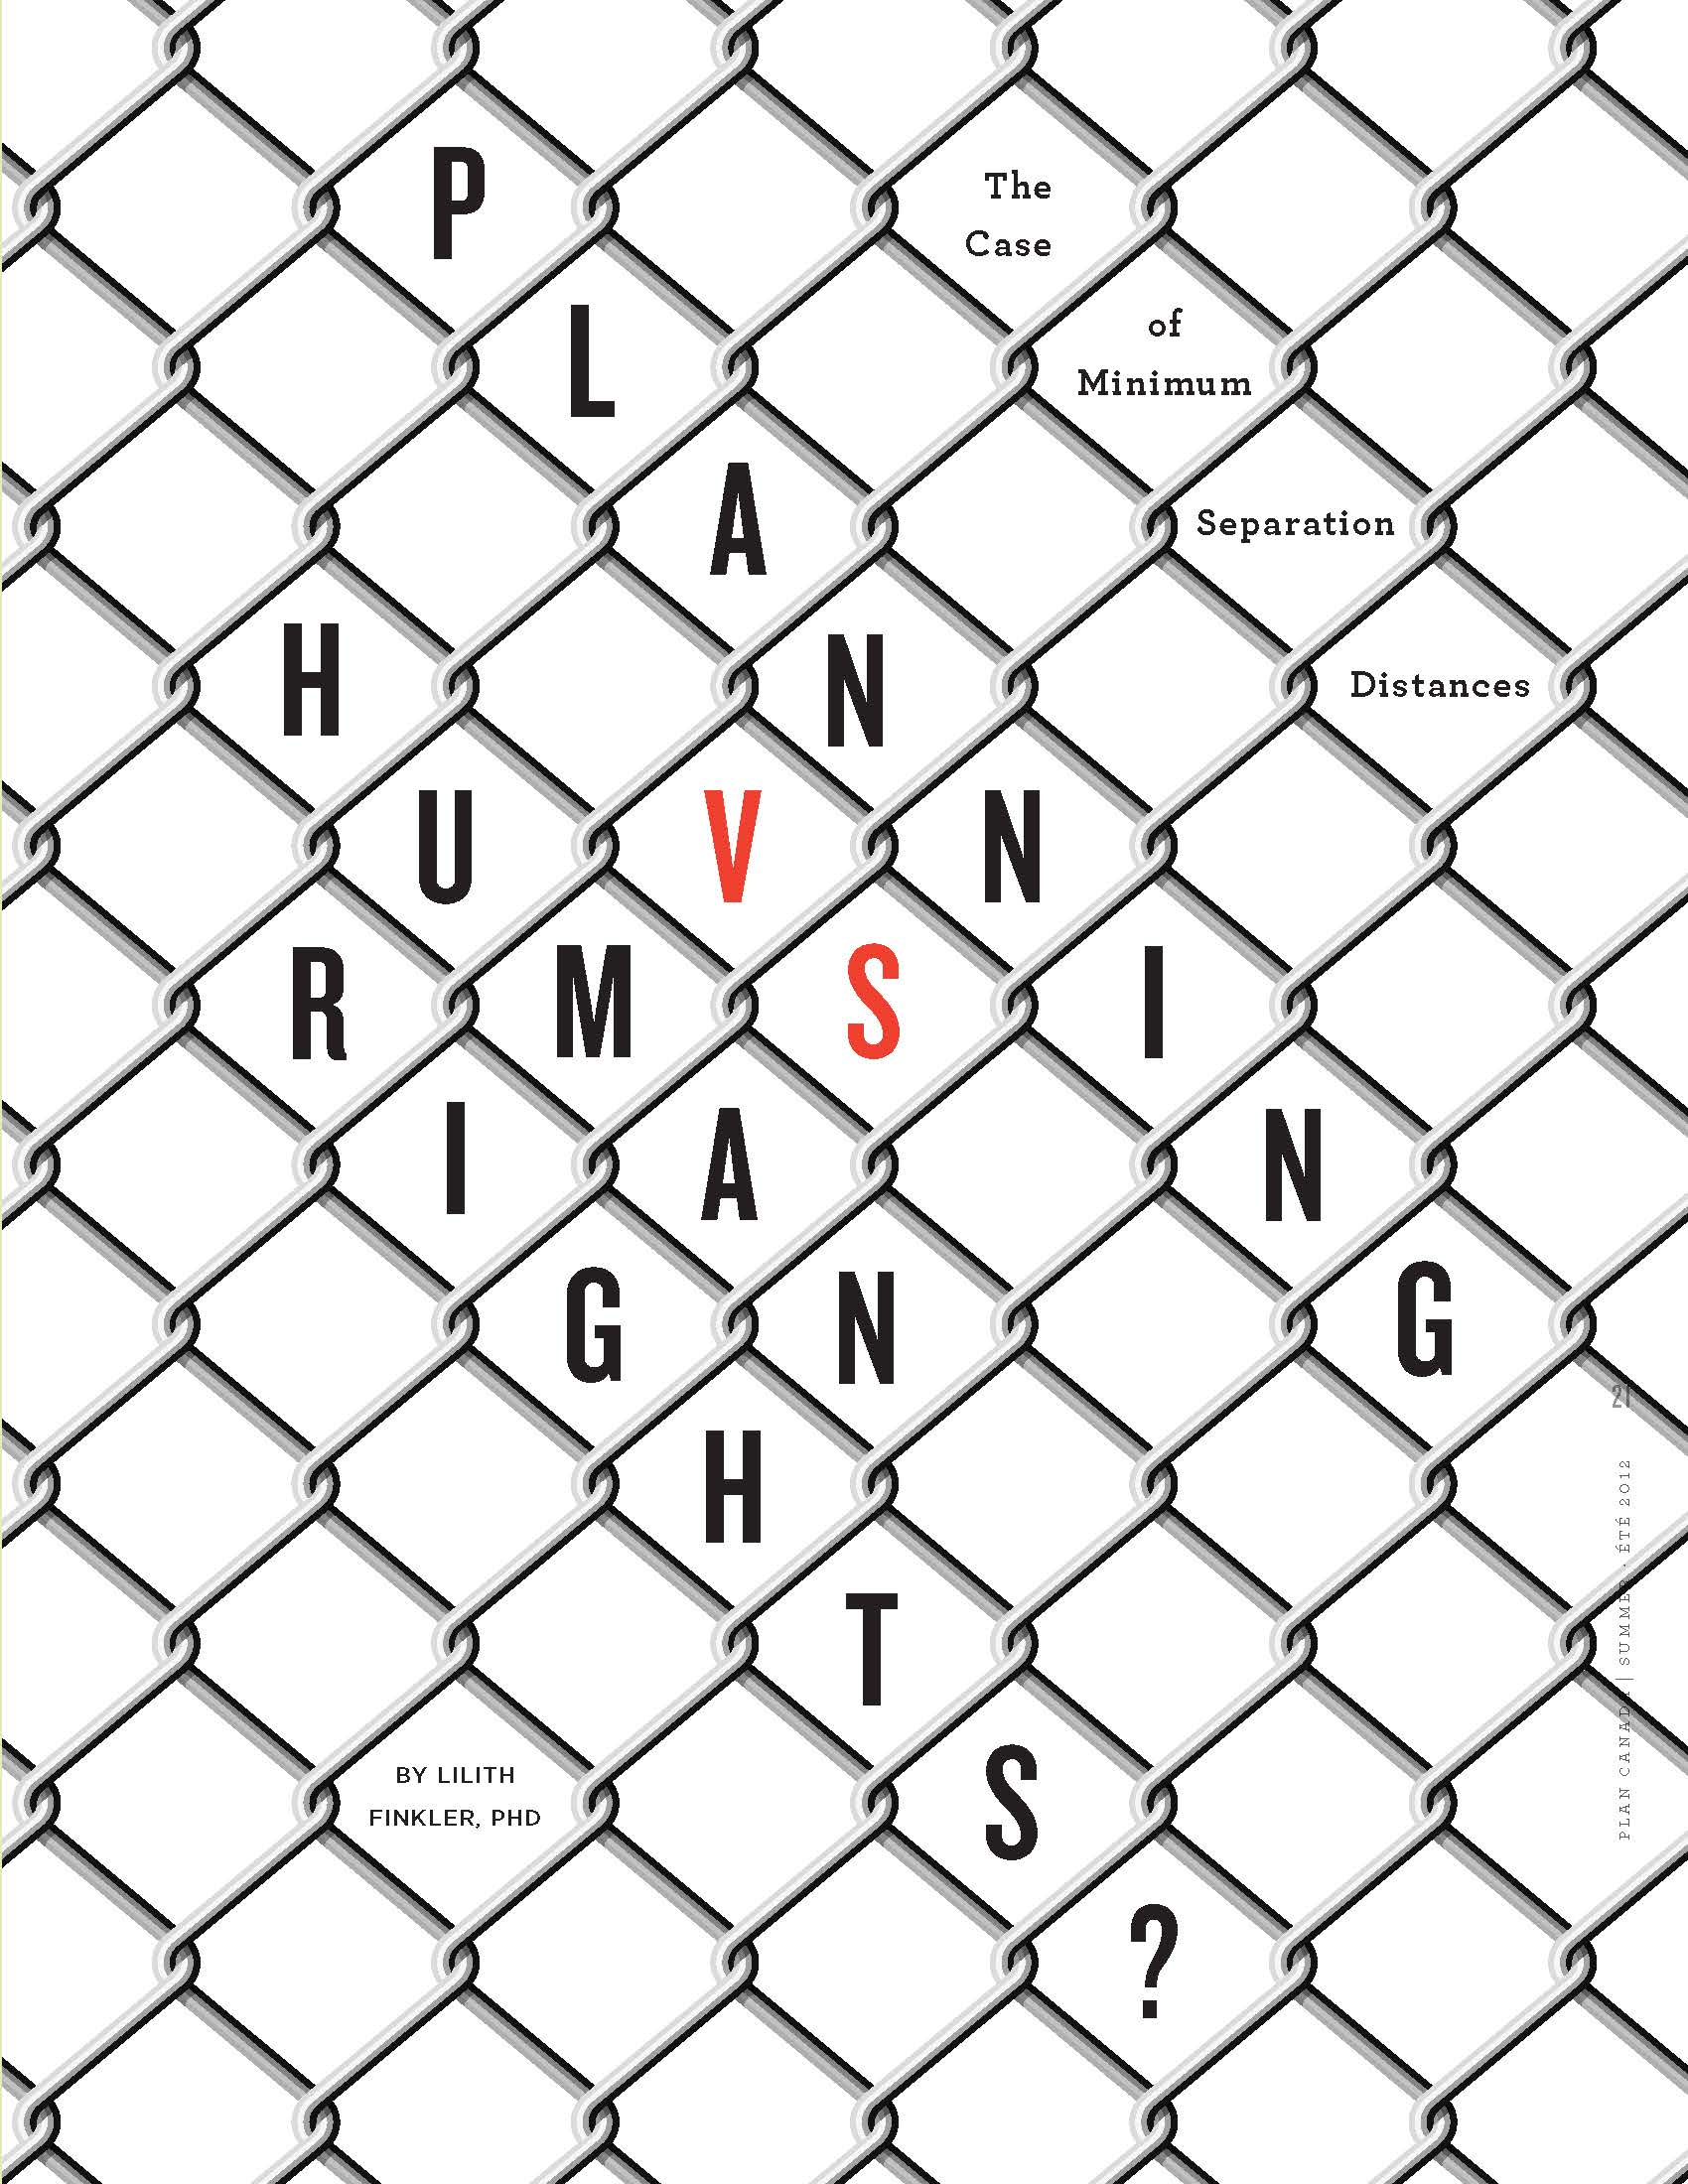 Planning vs. Human Rights? The Case of Minimum Separation